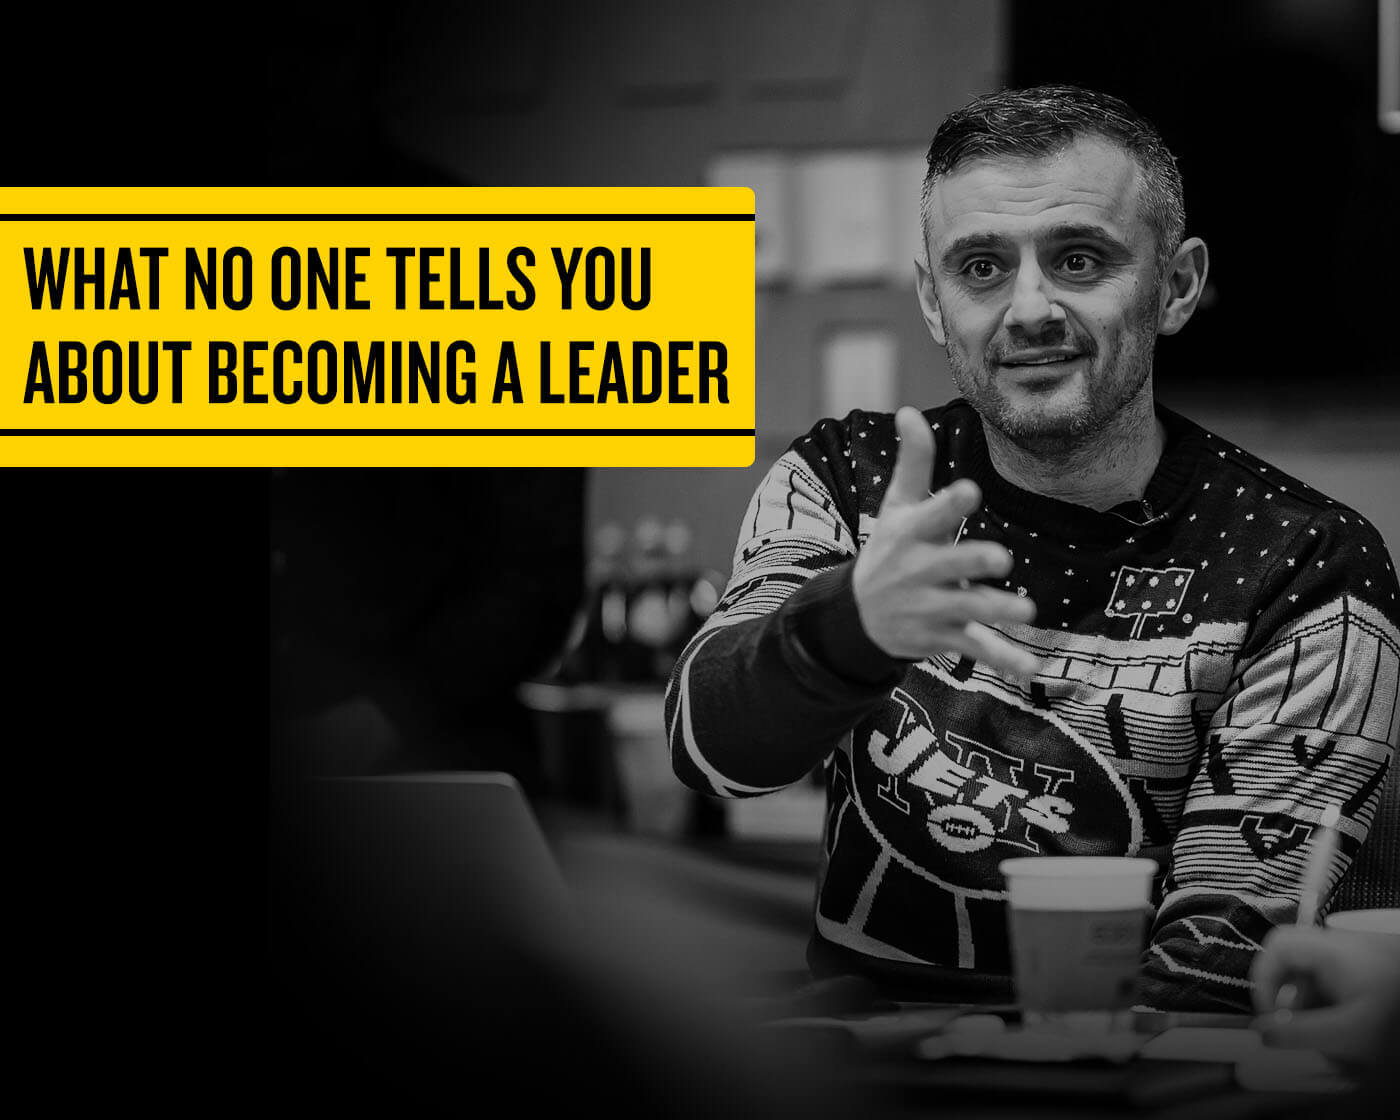 Gary vayernchuck in numbers- Life Lessons From Gary